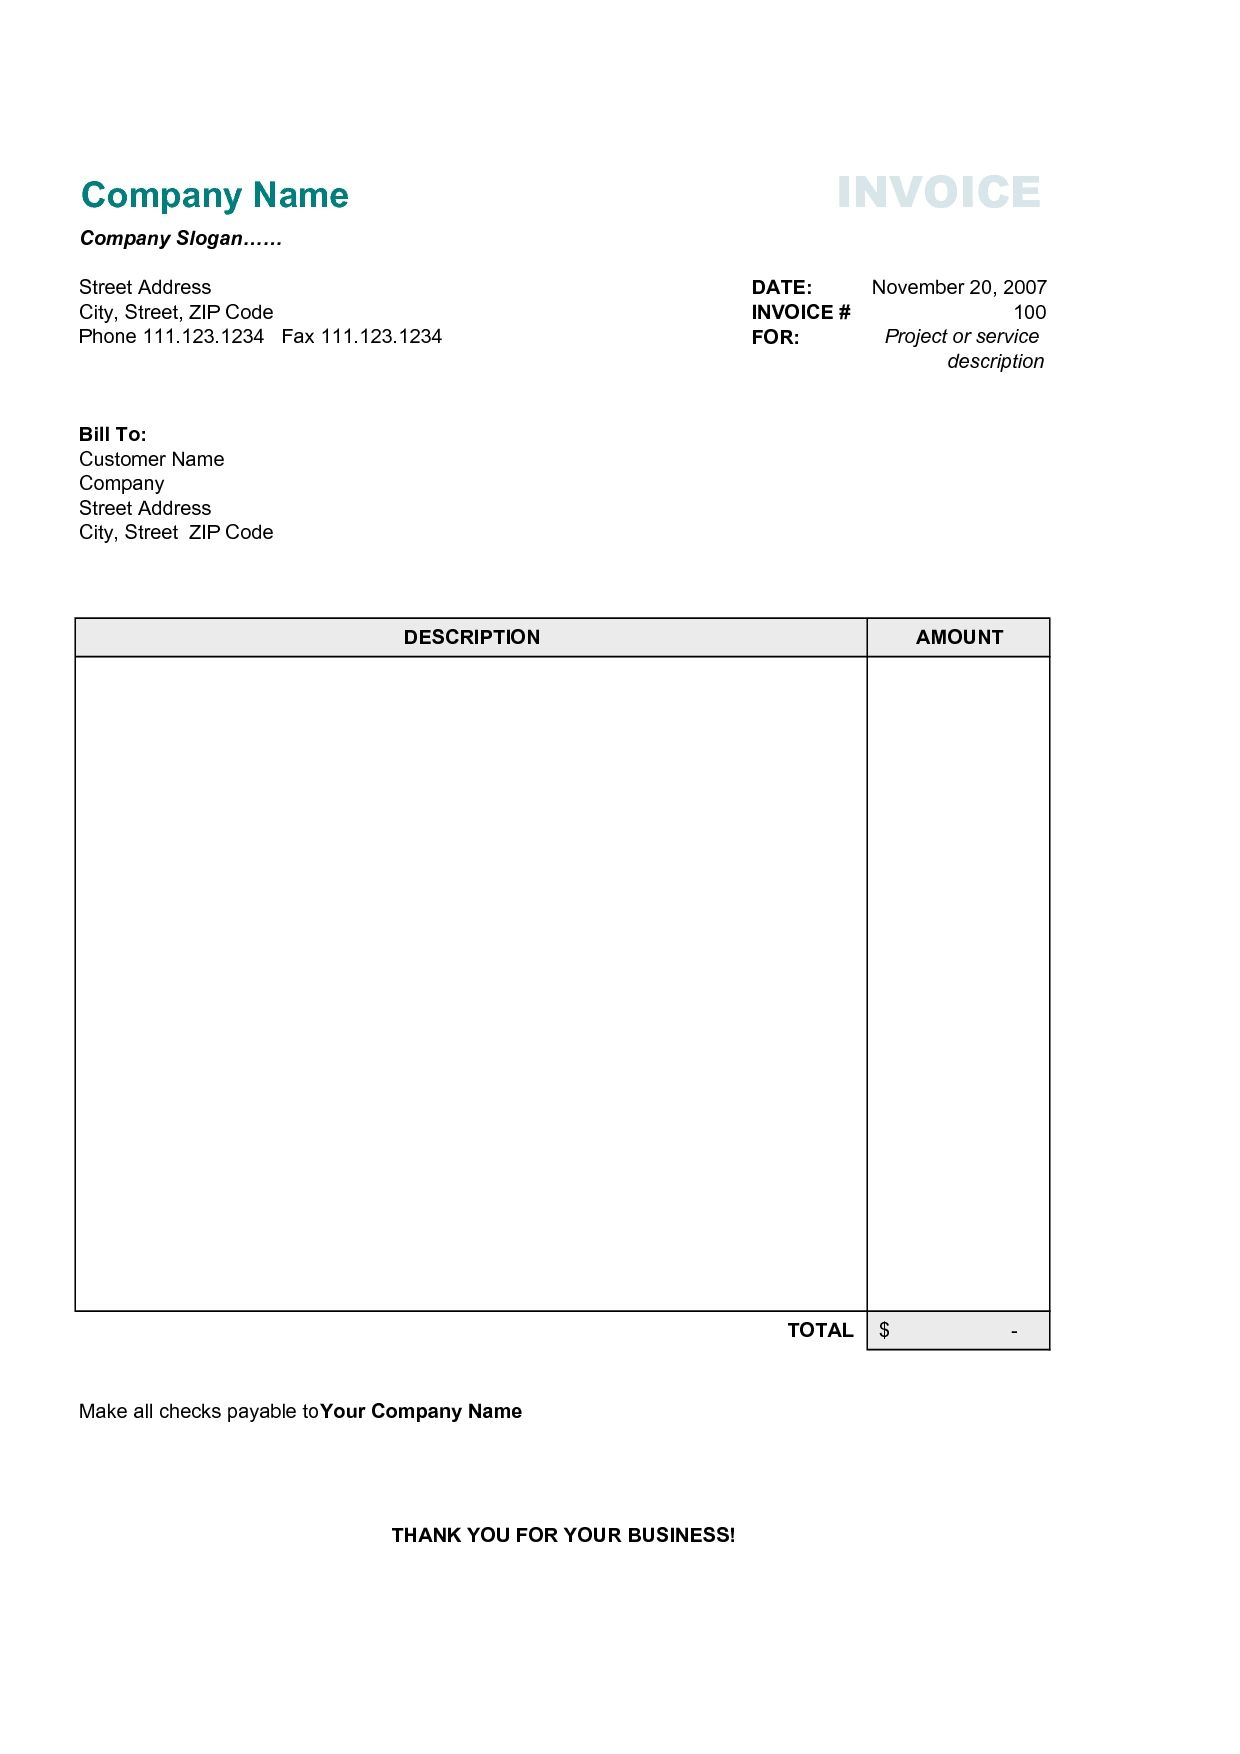 Free Business Invoice Template Best Business Template Free Invoice - Invoice Templates Printable Free Word Doc